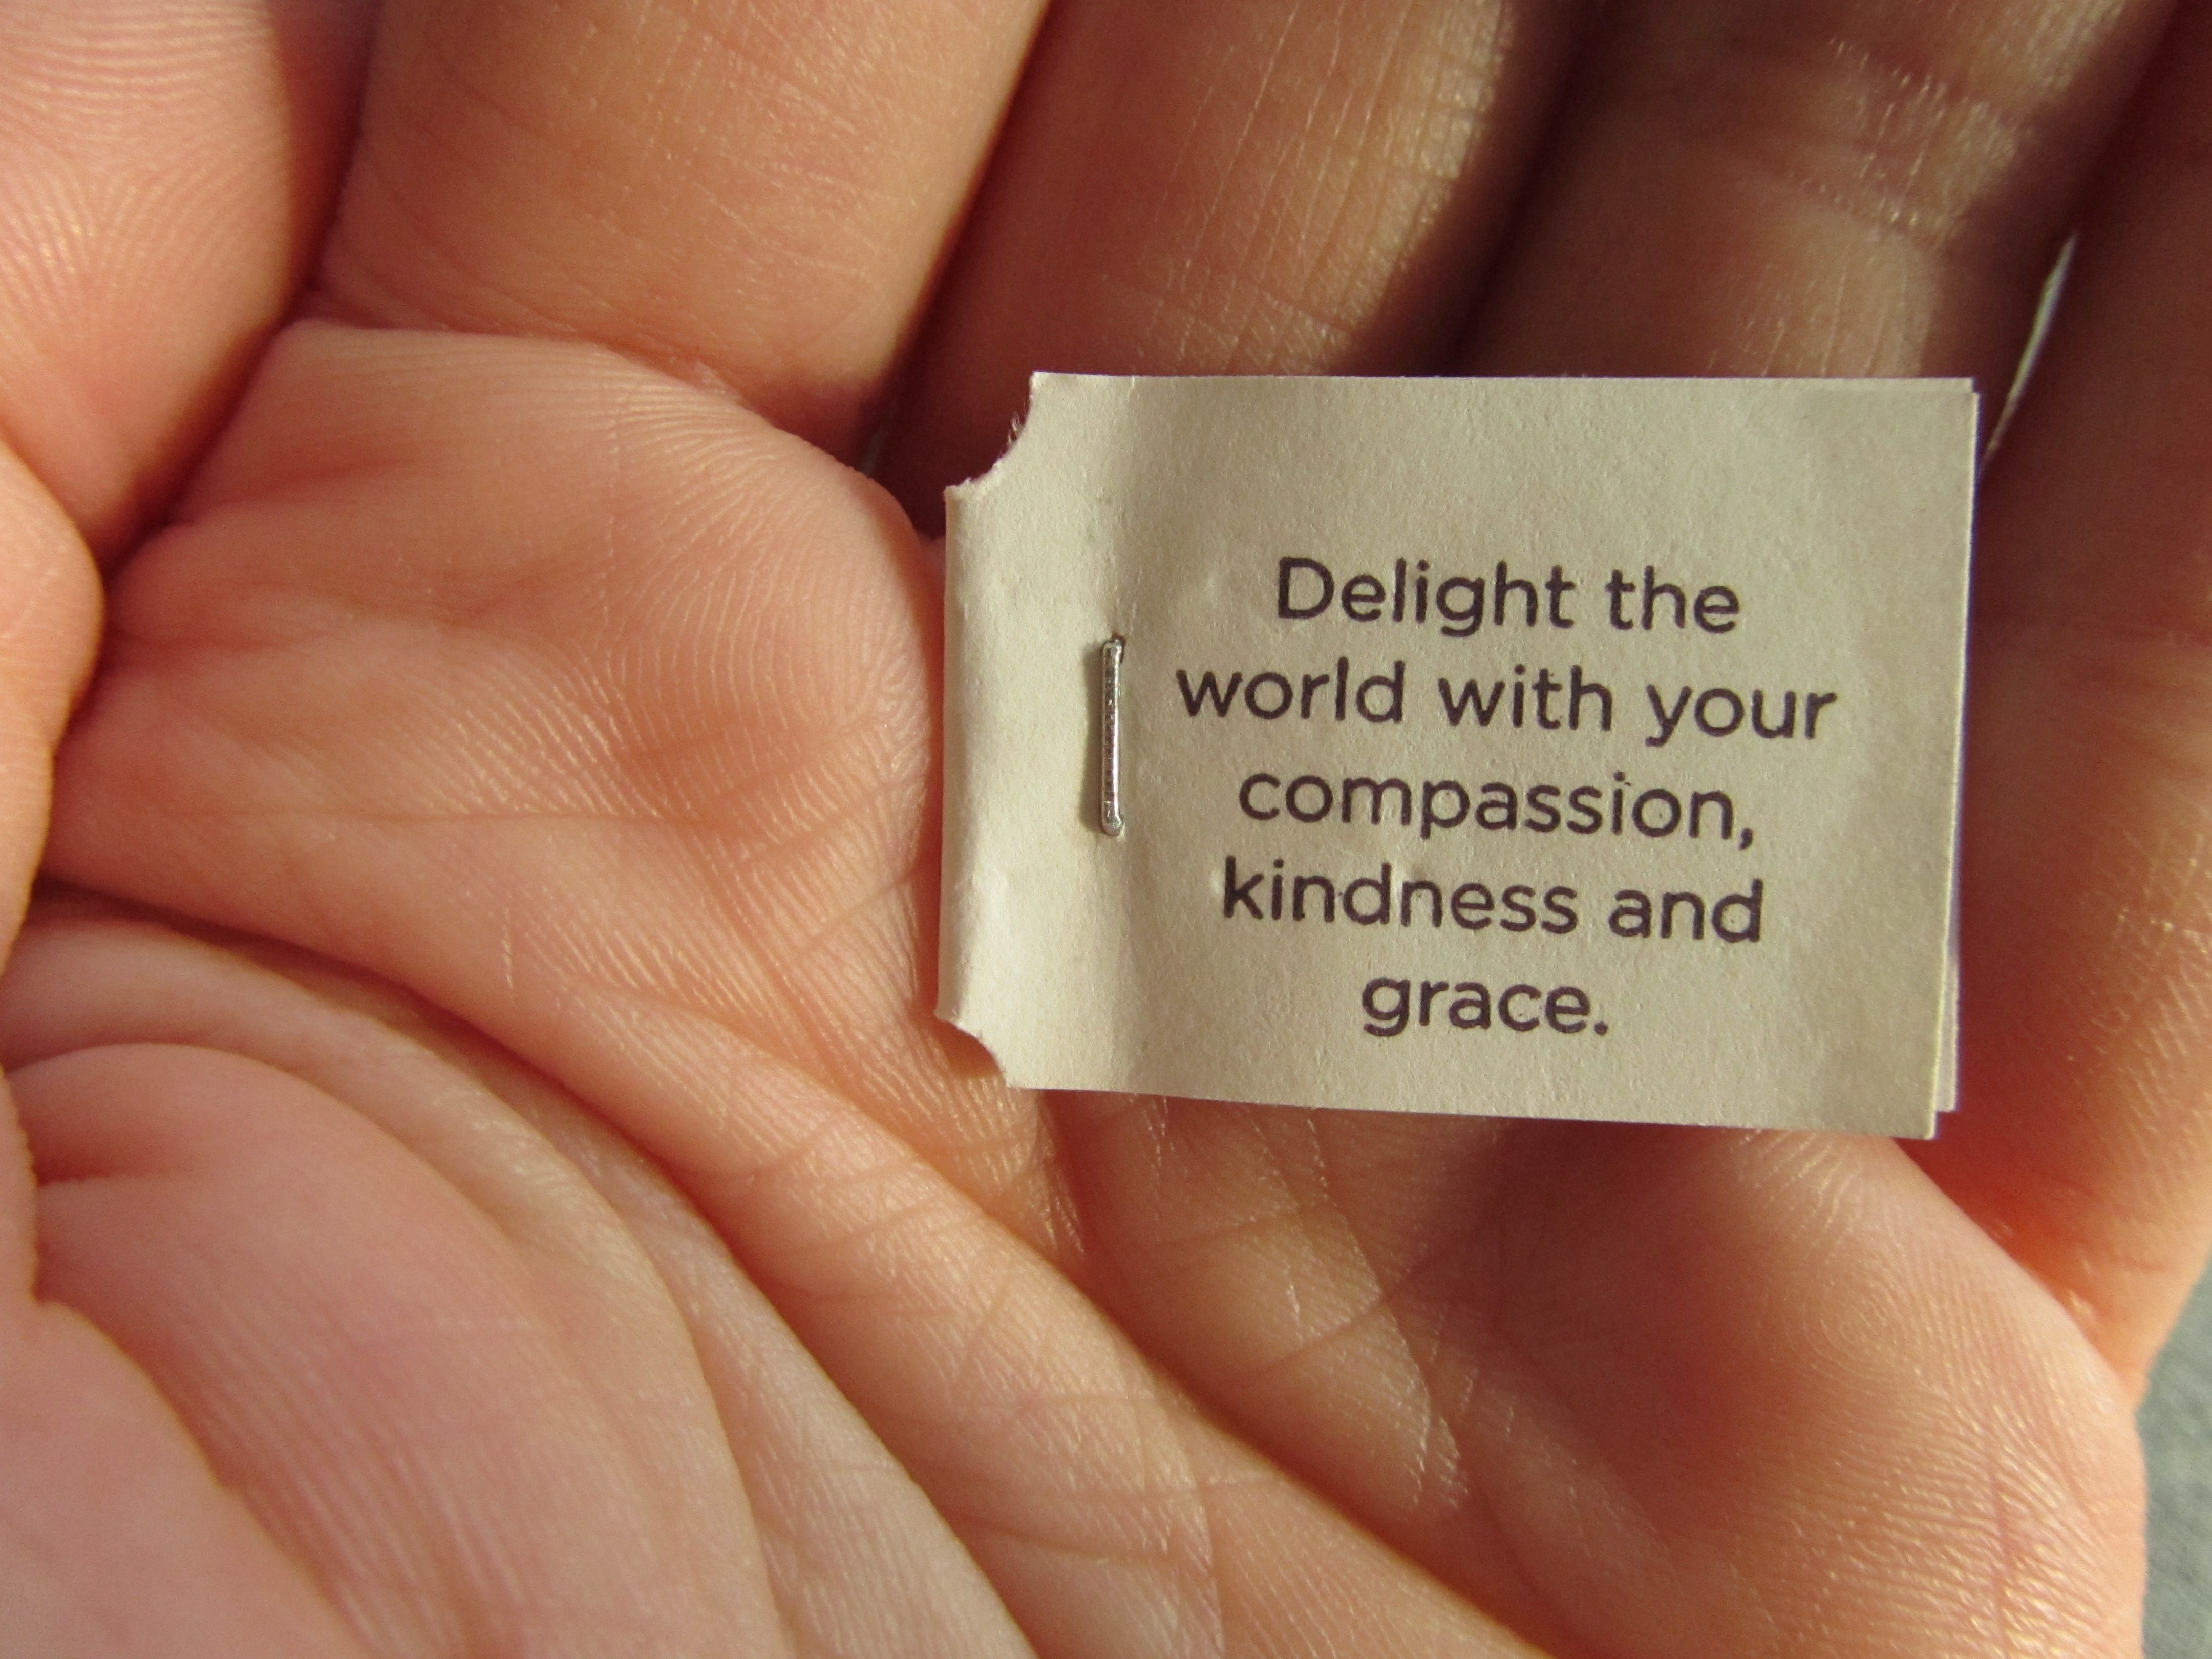 Delight The World With Compassion, Kindness, and Grace